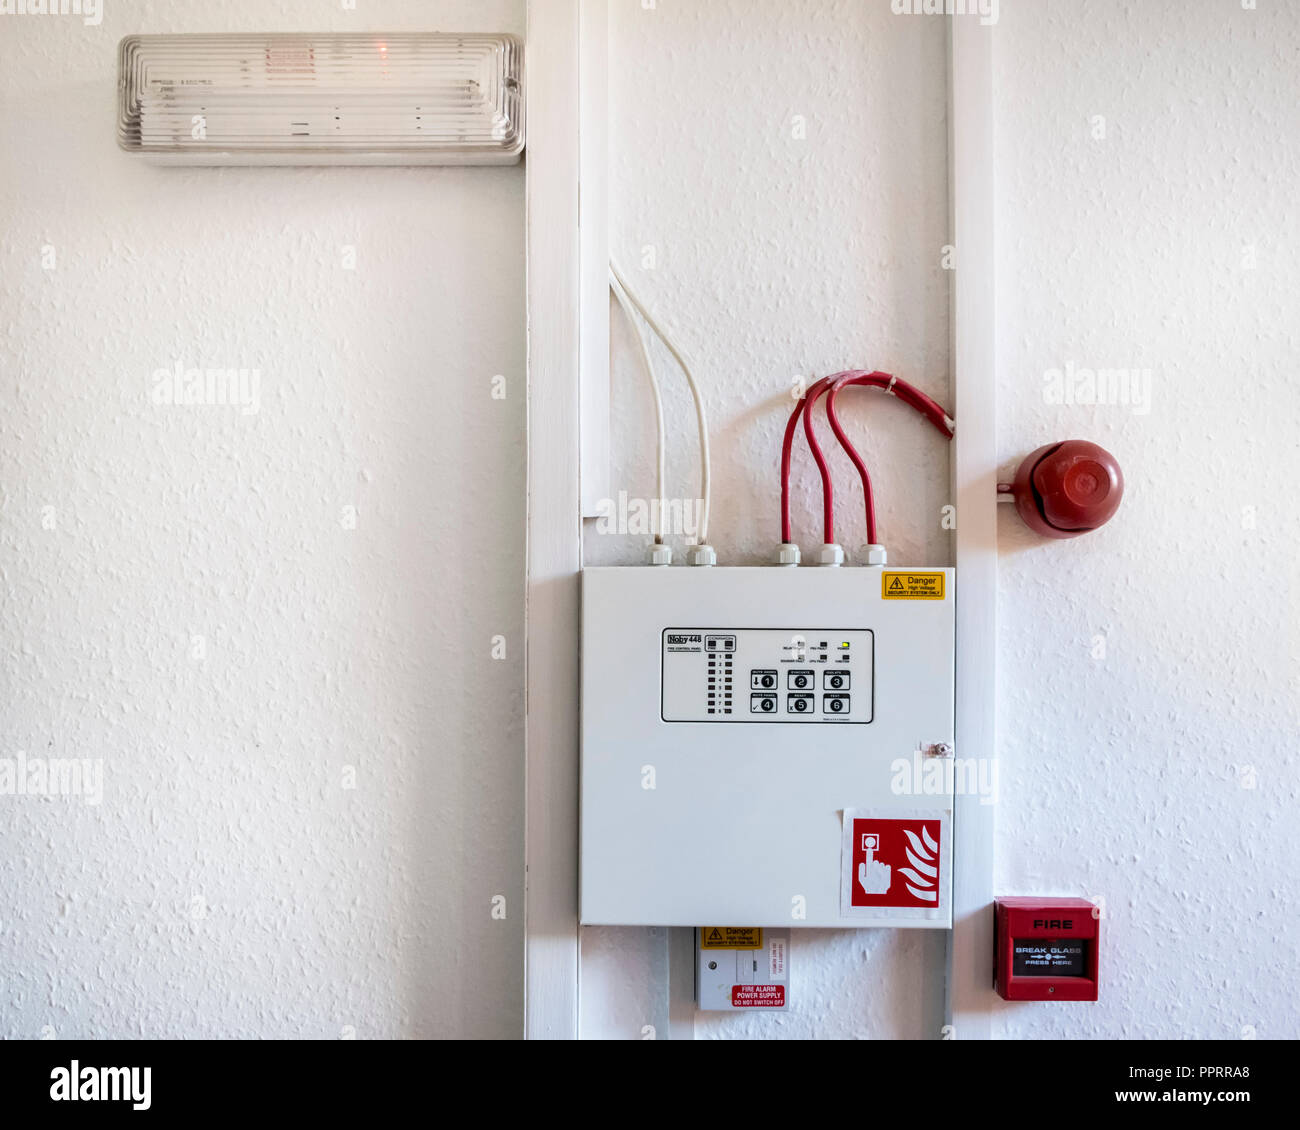 hight resolution of fire alarm system with fire bell and safety light with a noby 448 fire control panel